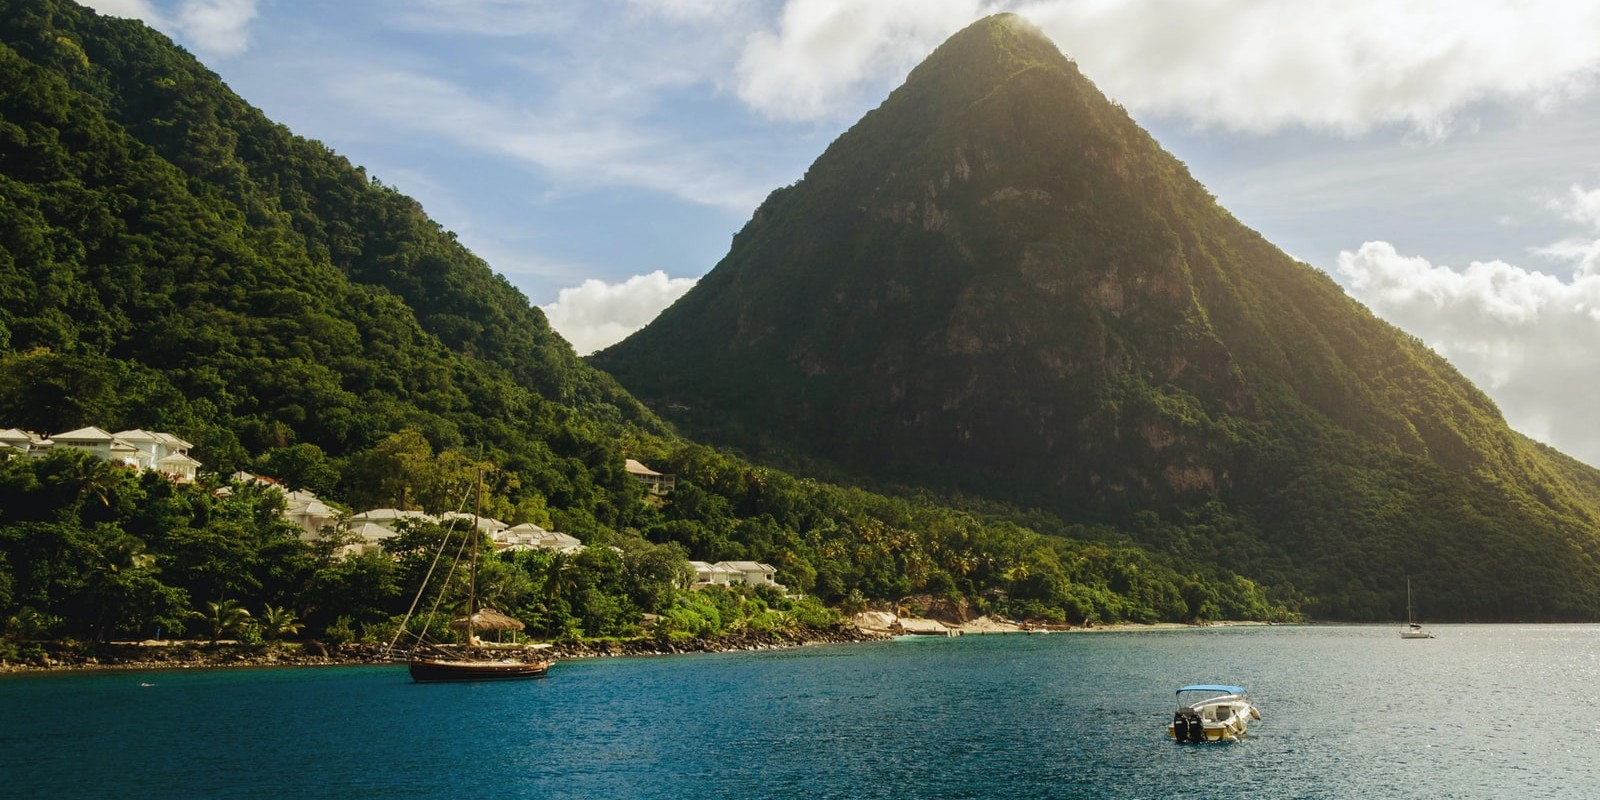 A glorious view of the Pitons from the Caribbean Sea